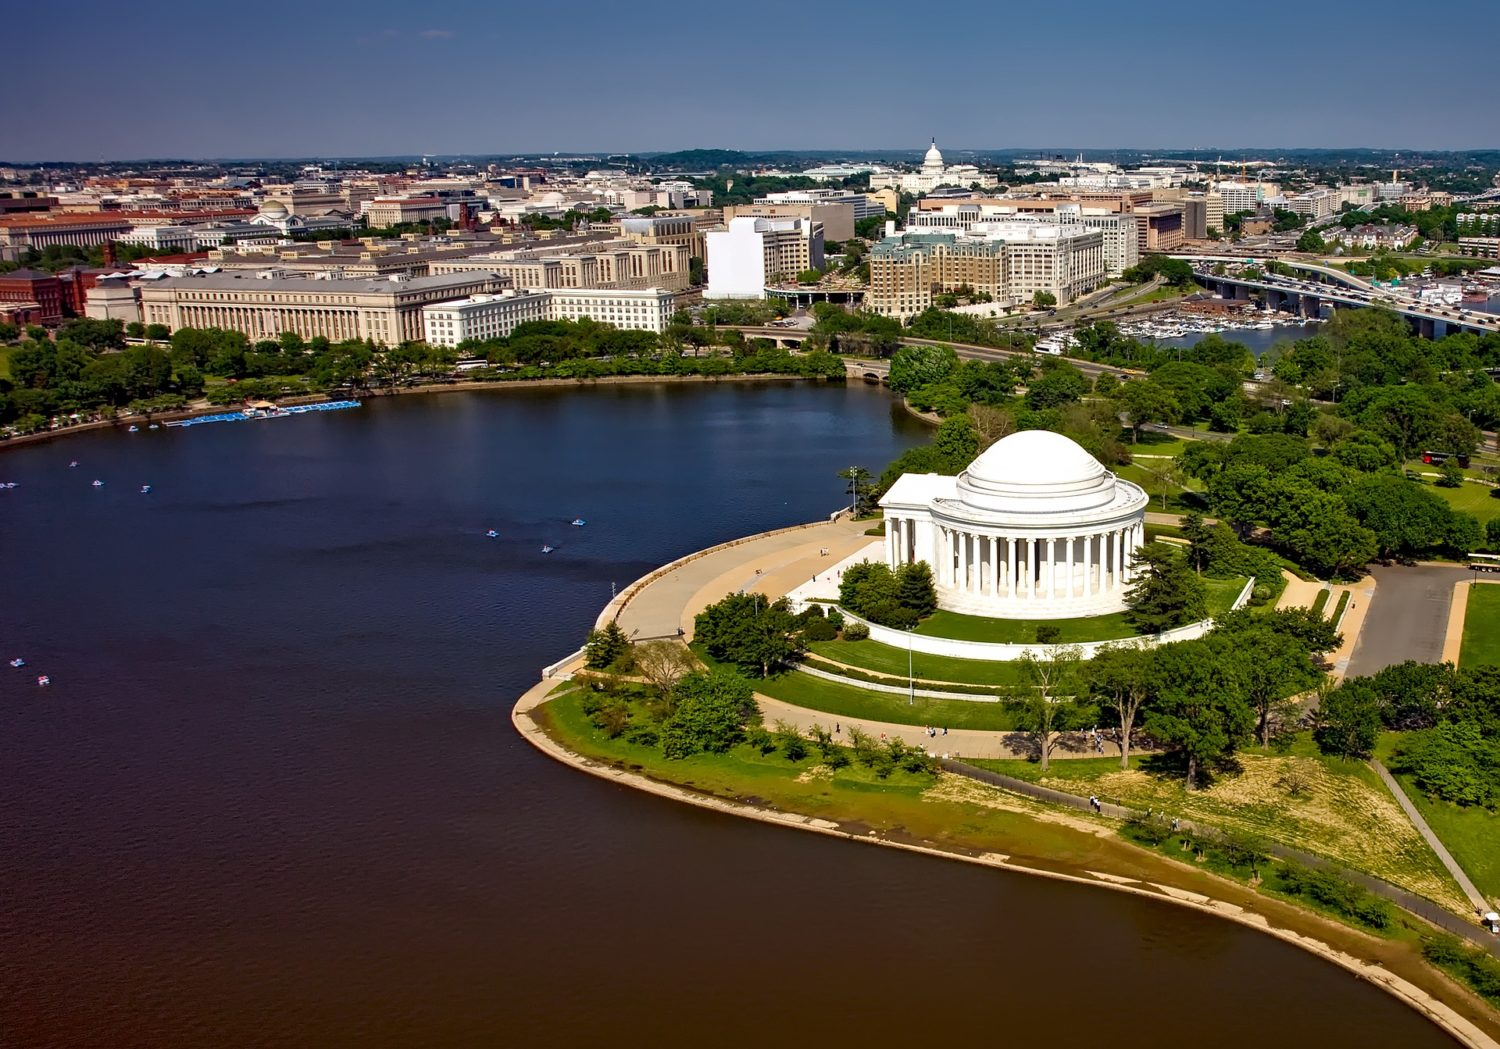 Aerial view of Thomas Jefferson Memorial, Washington, D.C.